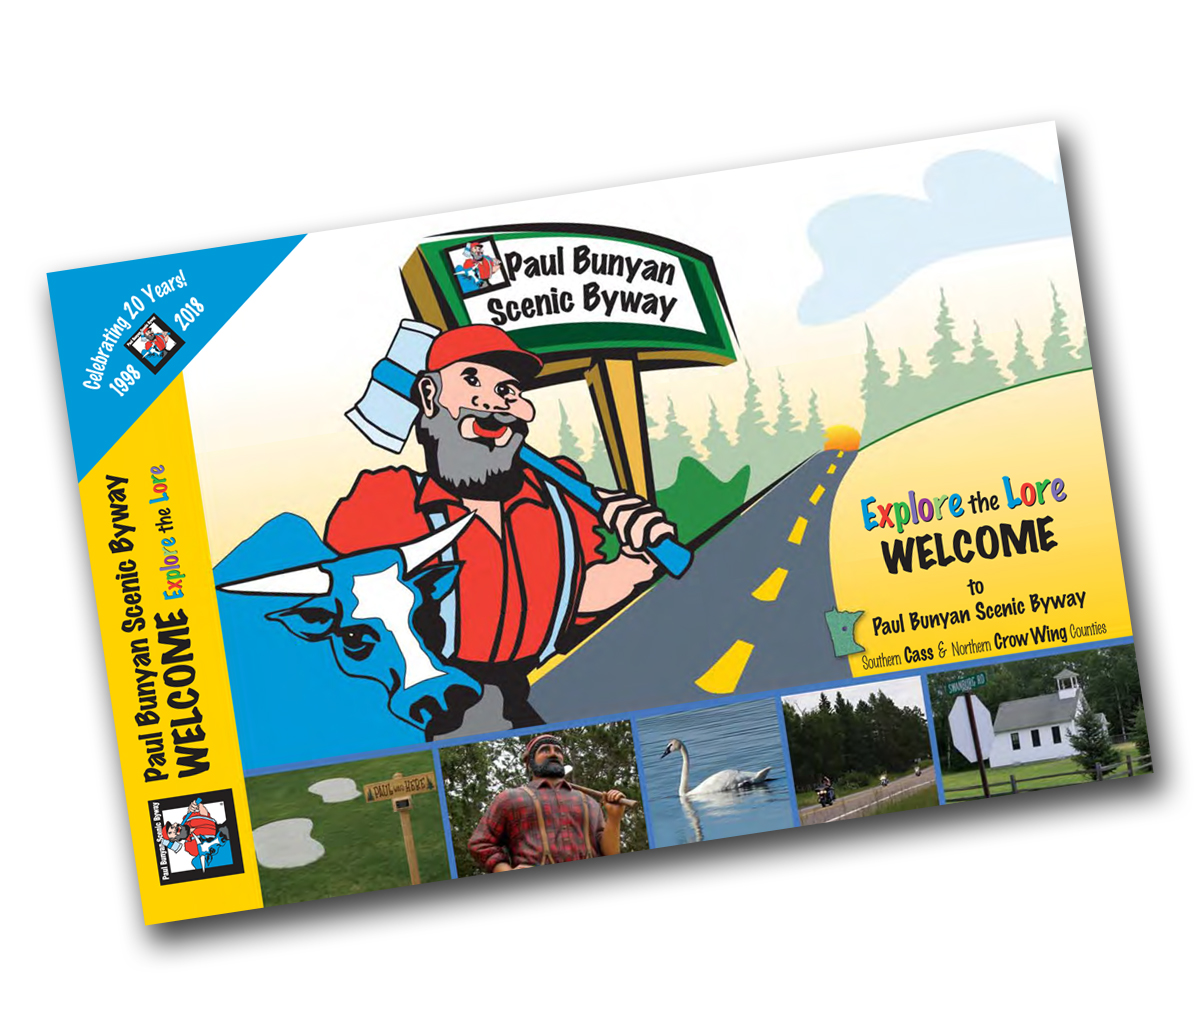 PBSBA new Welcome Brochure can be found on local area Discover Racks and at Scenic Byway kiosks along the Paul Bunyan Scenic Byway.